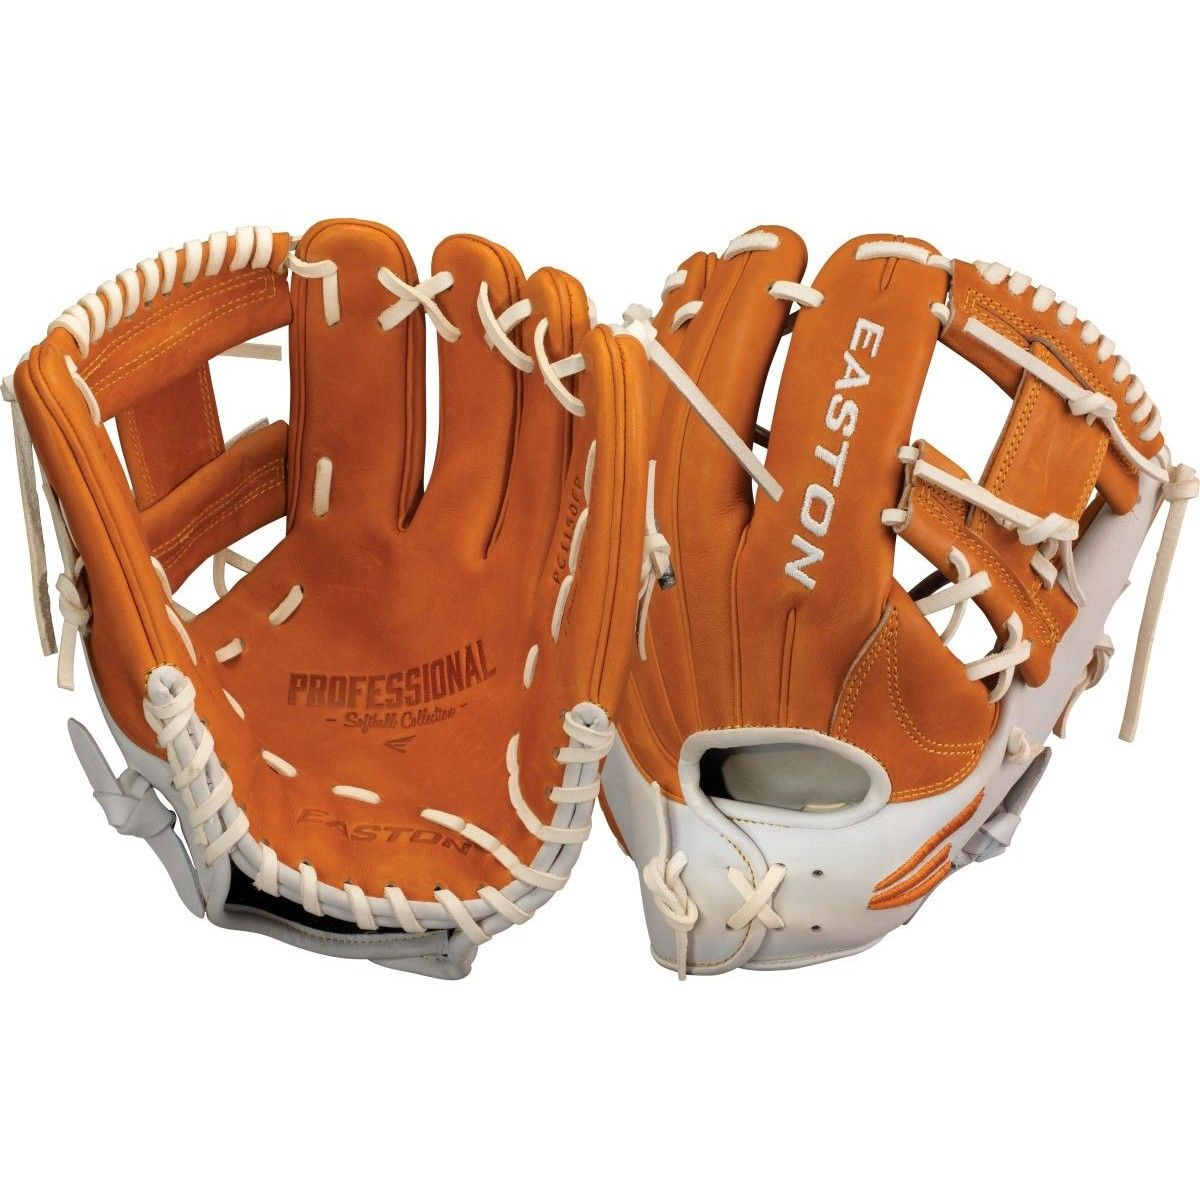 Easton Pro Fastpitch Collection 11.5